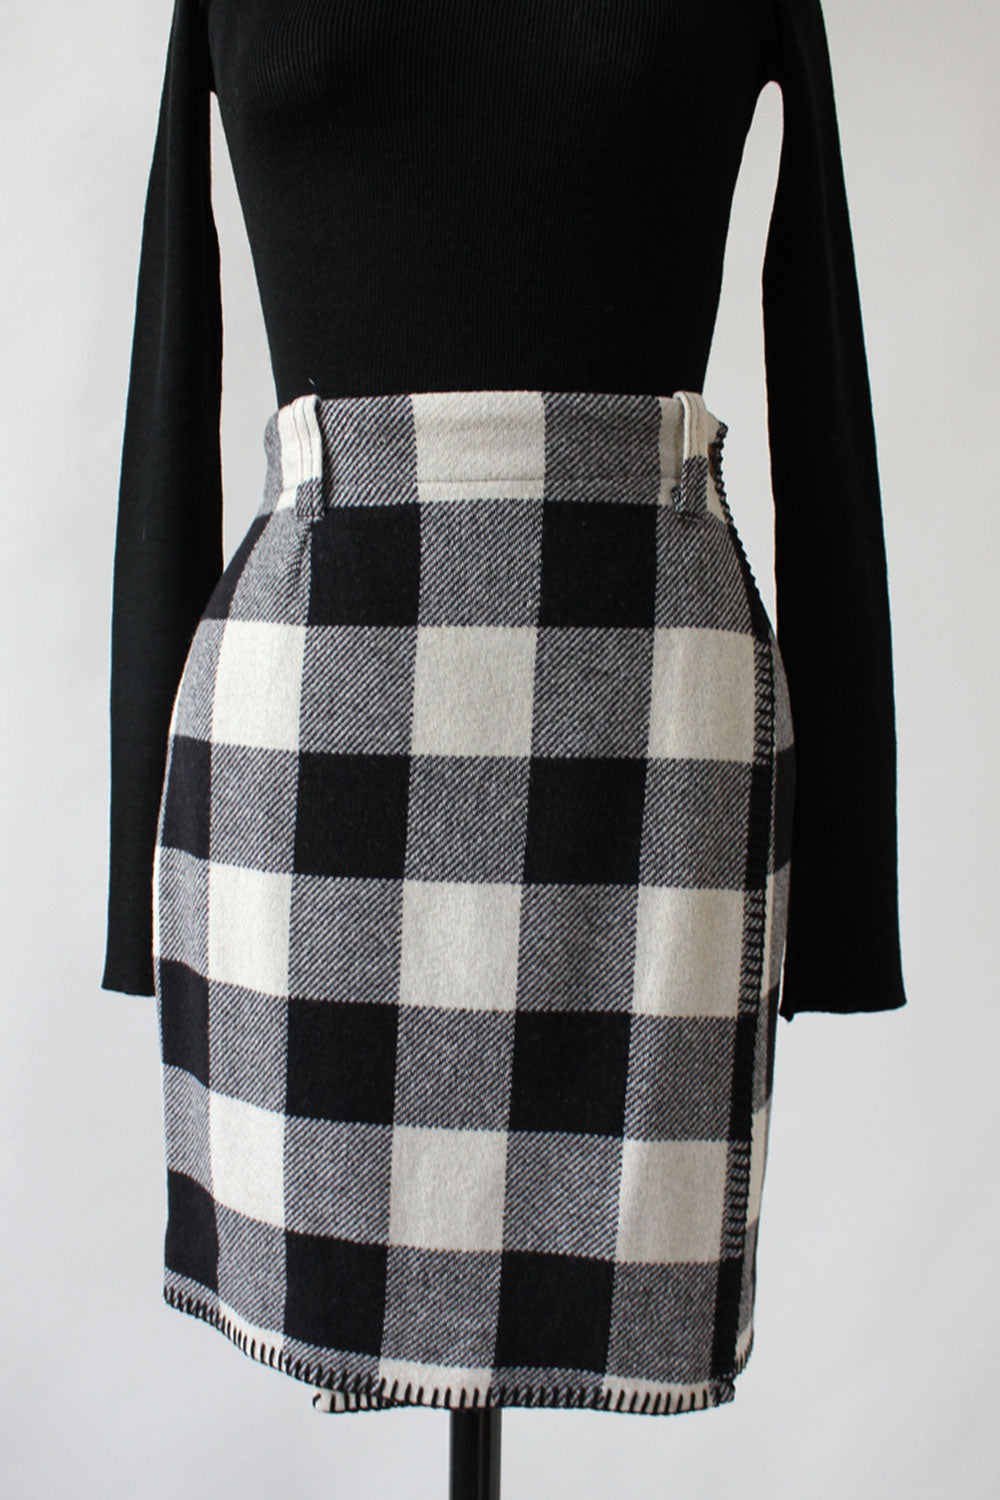 Monochrome Plaid Blanket Mini S